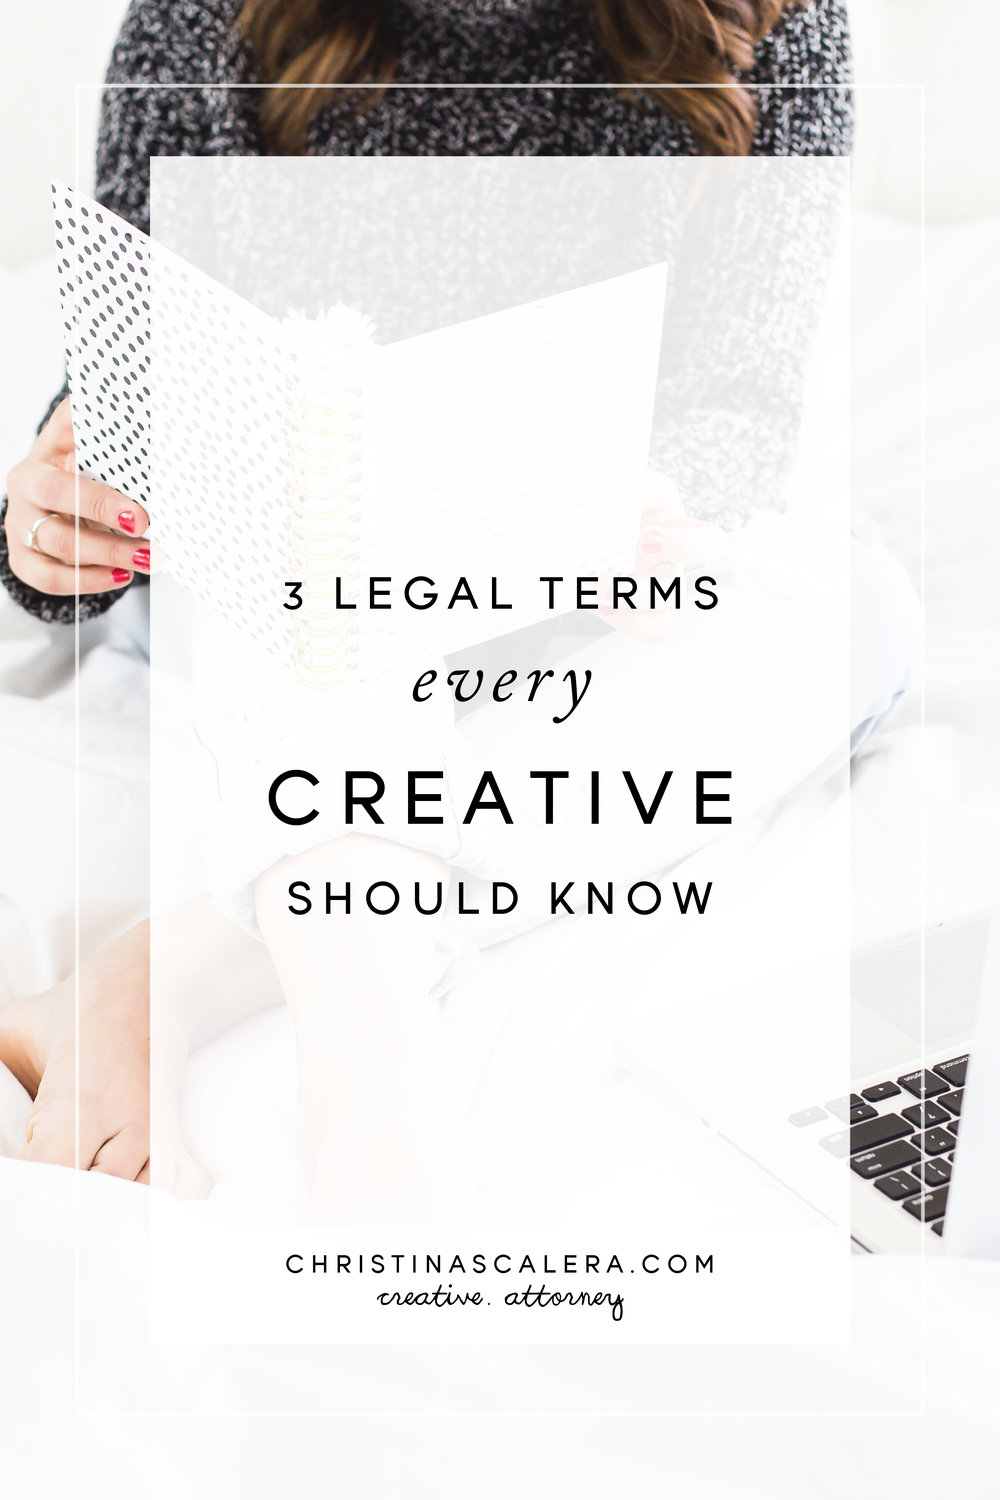 3 Legal terms that every creative should know, legal tips for creatives.